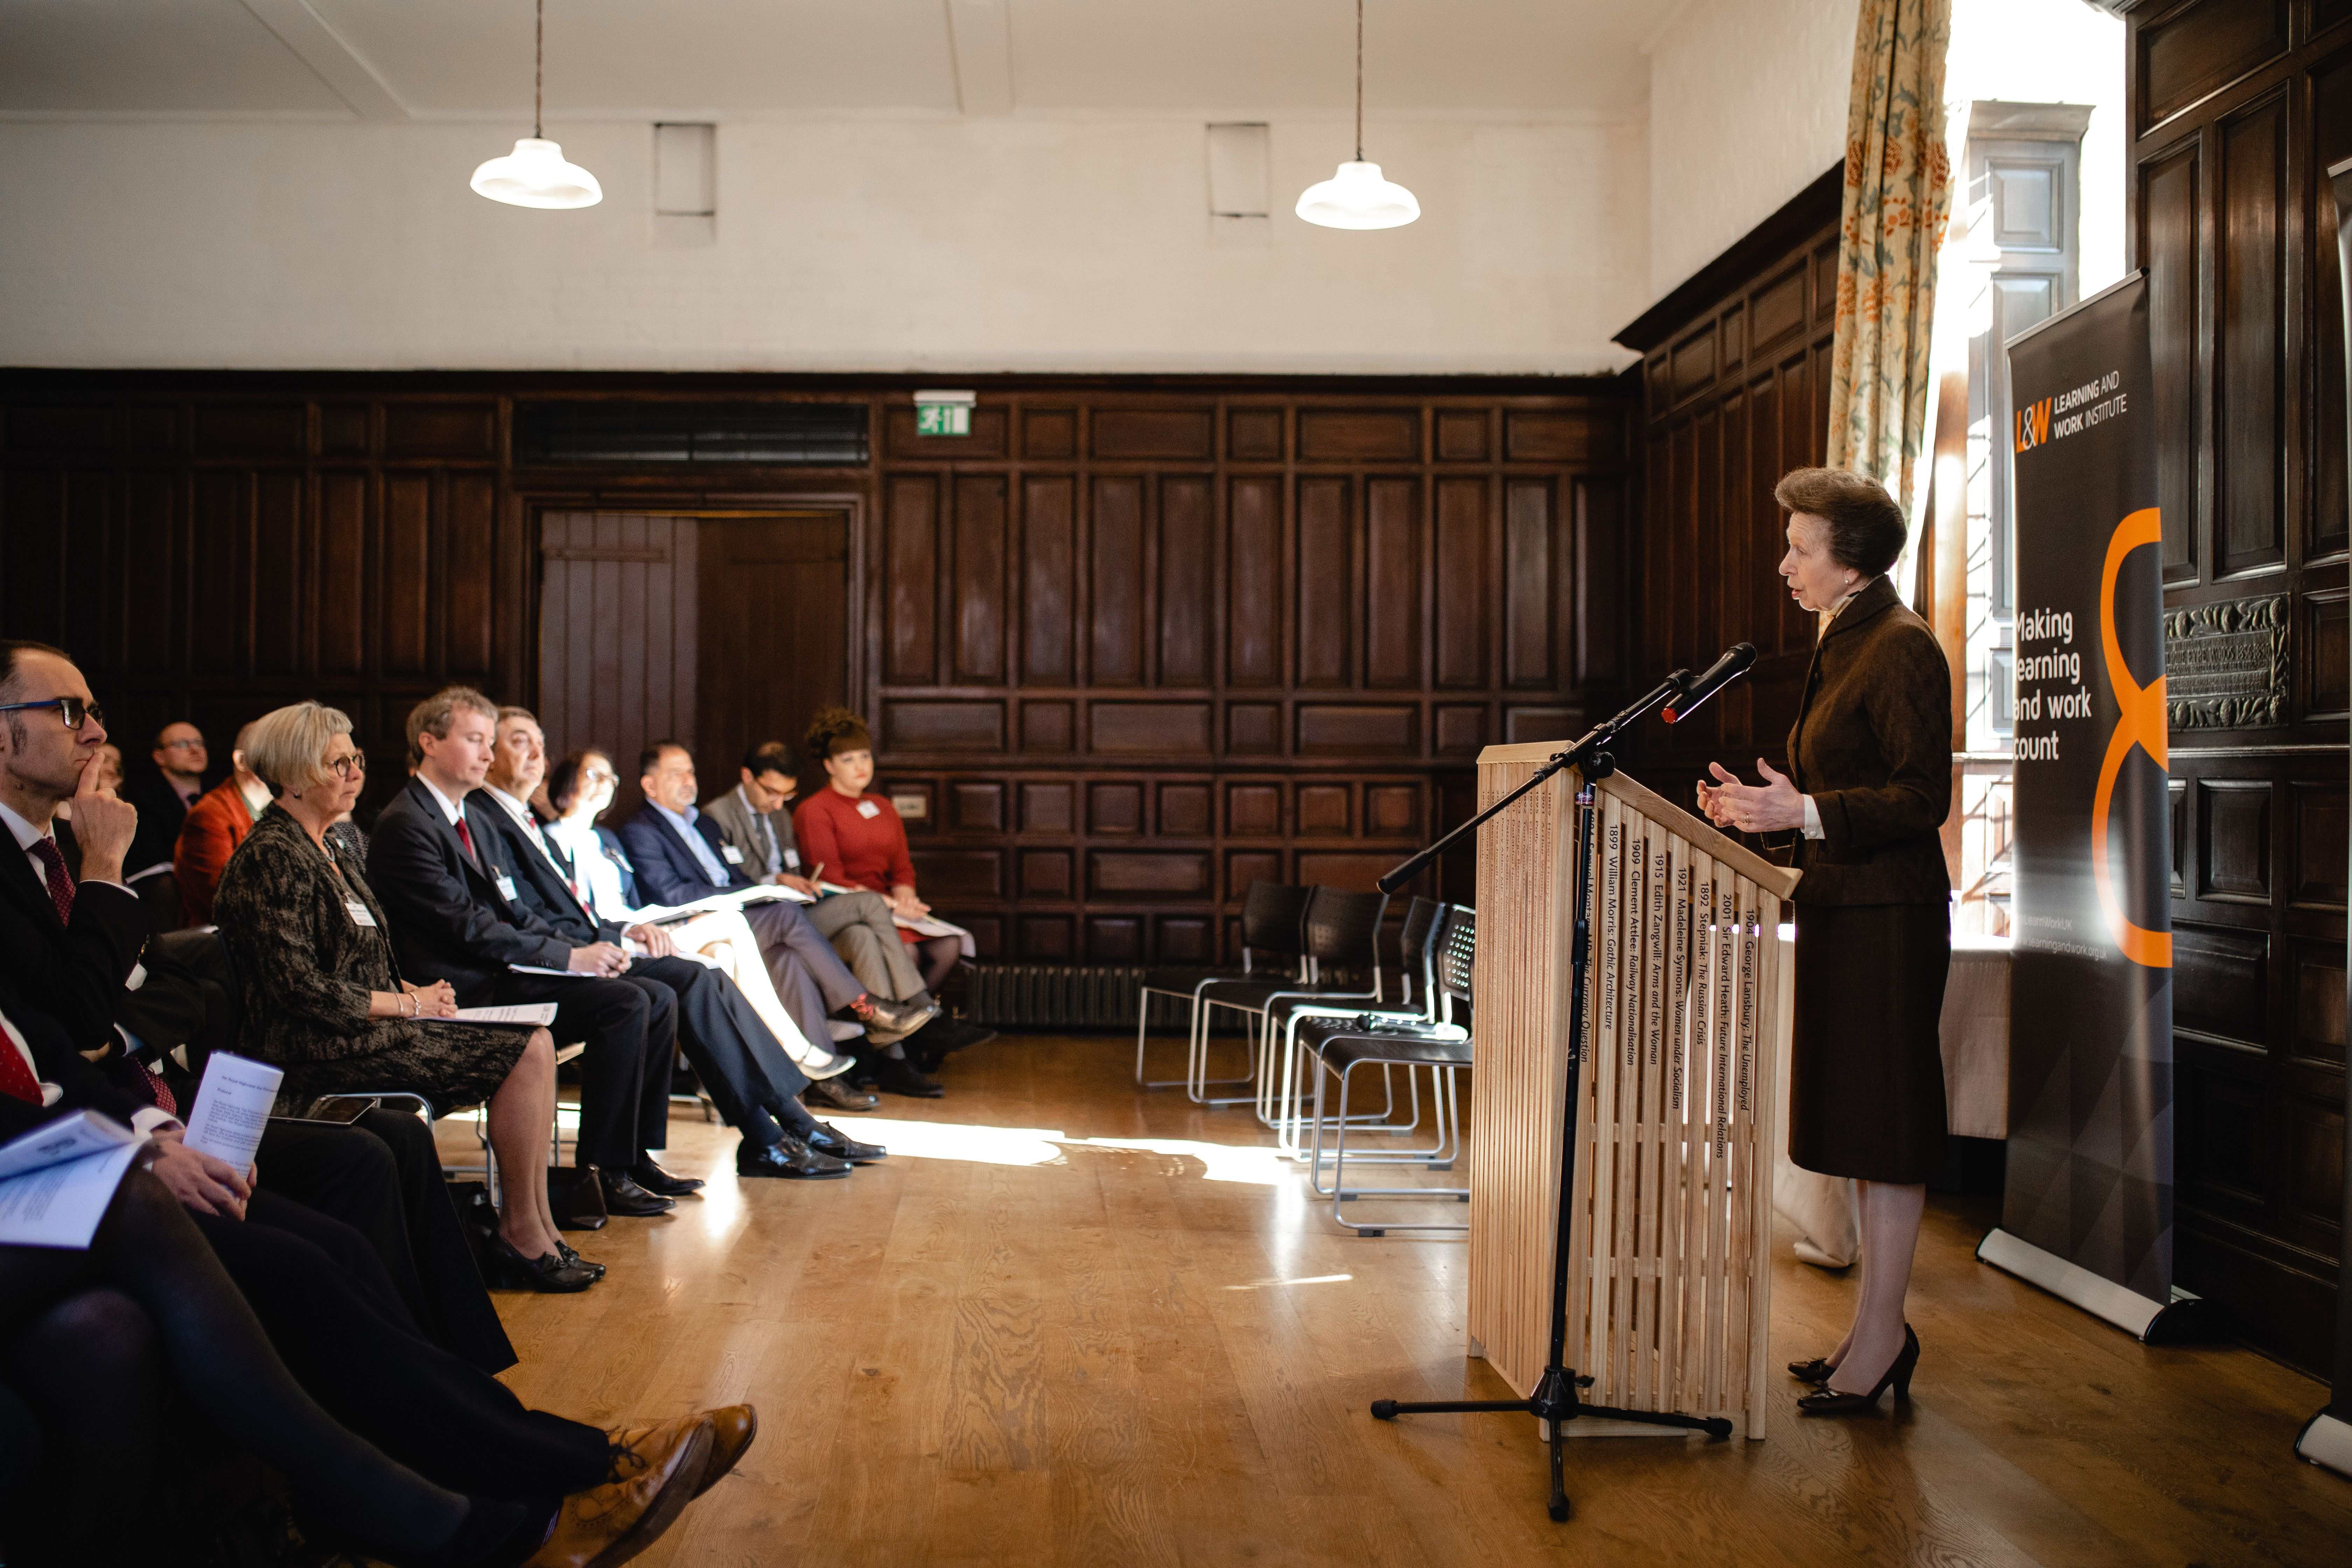 HRH Princess Anne addresses the Youth Commission Conference